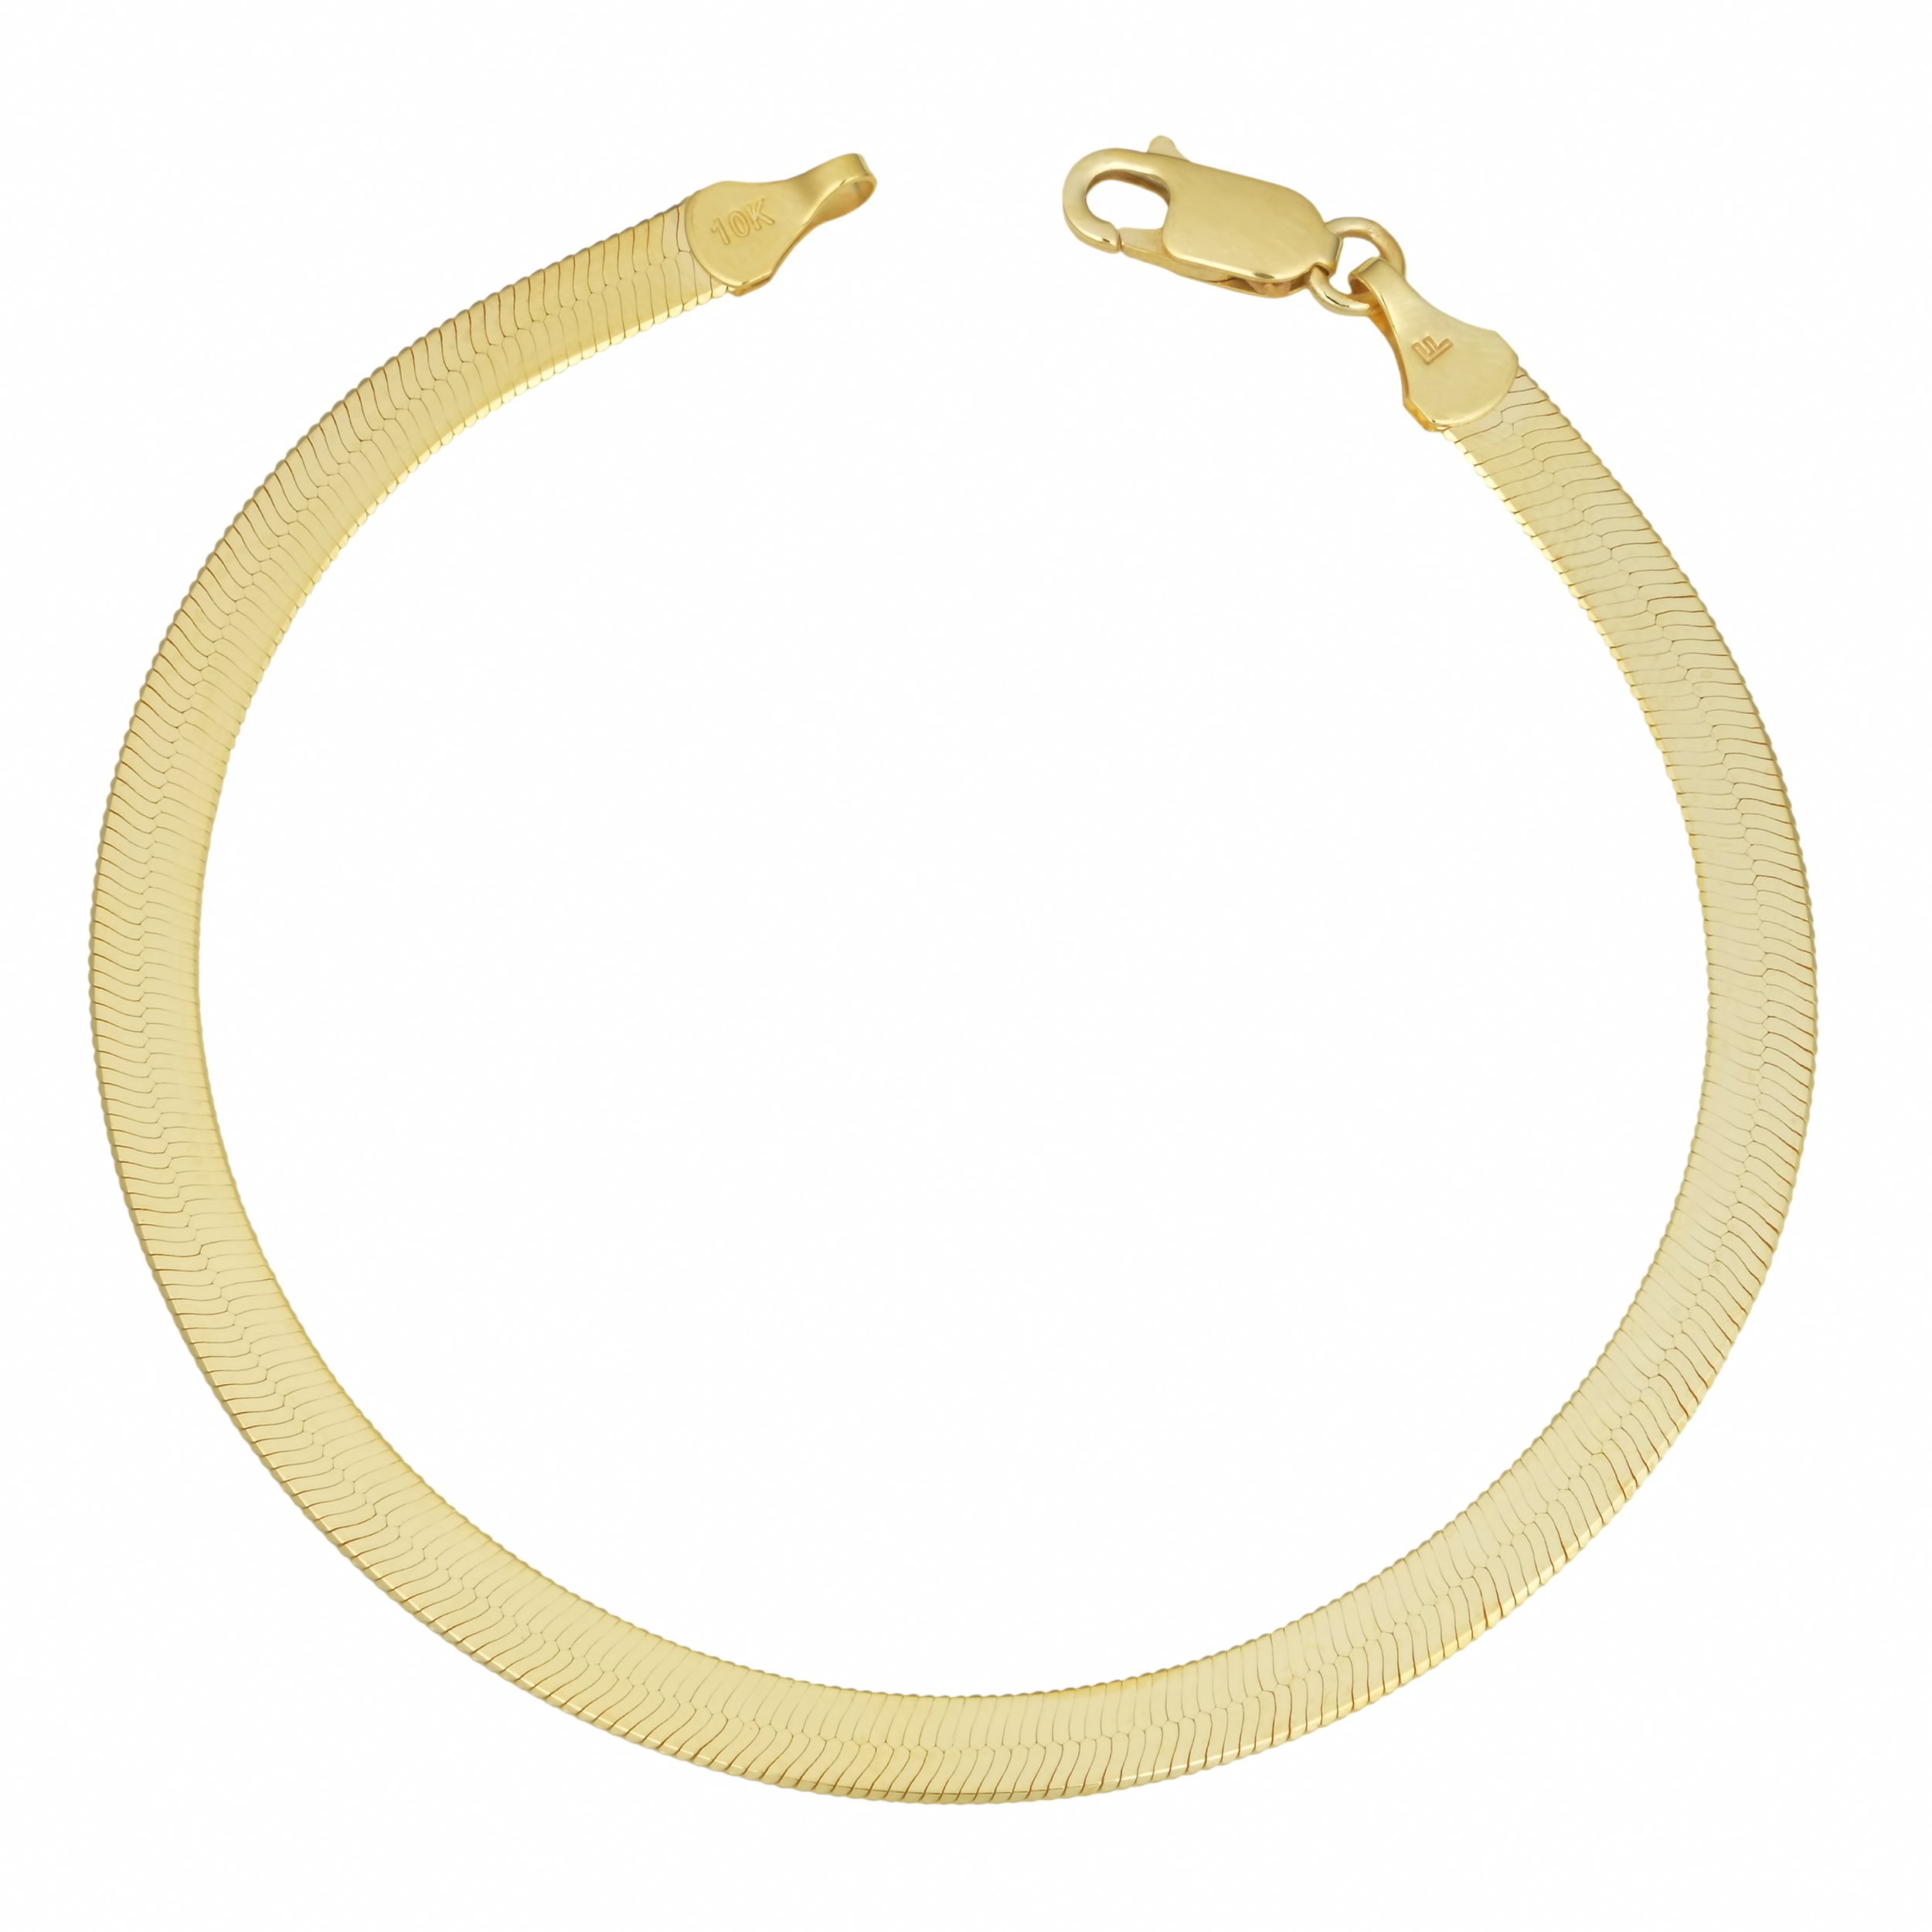 Kooljewelry 10k Yellow Gold 4.5 mm Herringbone Bracelet (7.5 inch) by Kooljewelry